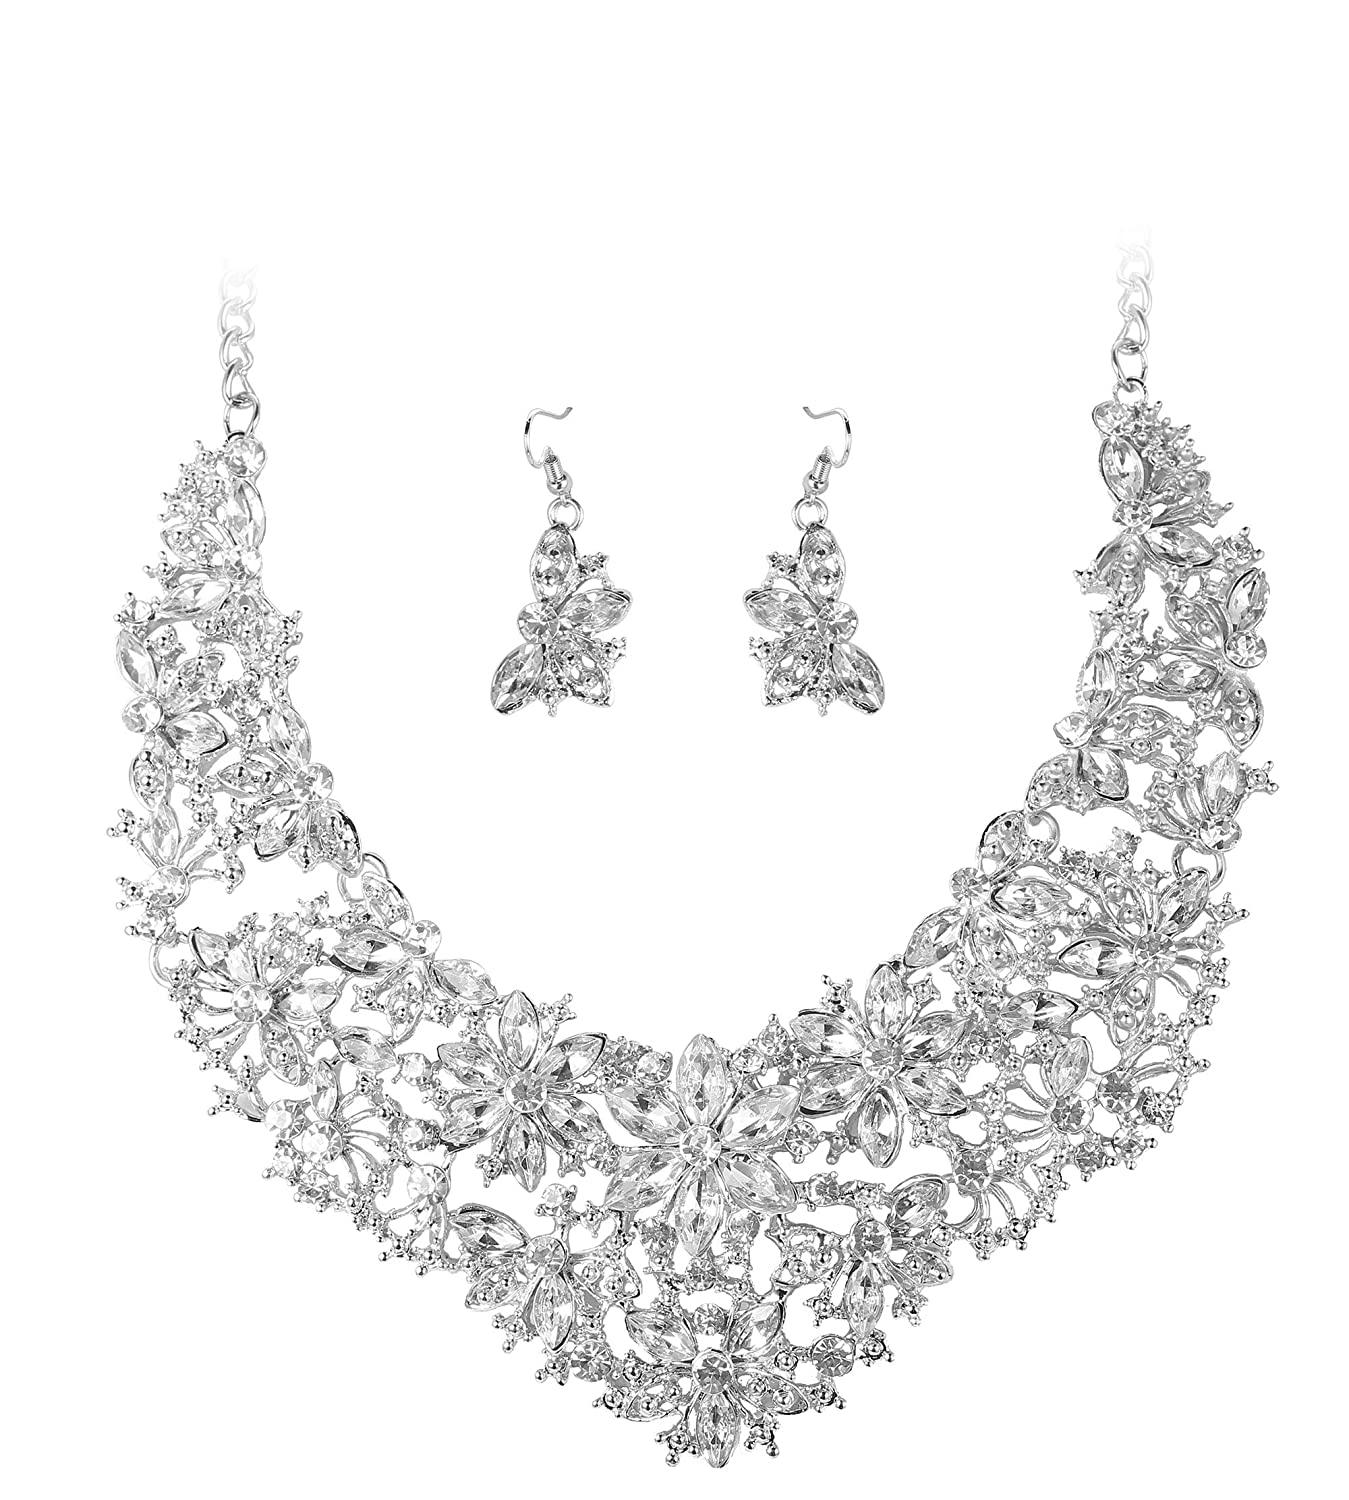 ORAZIO Rhinestone Necklace Earring Set for Women Girls Bridesmaid Jewelry Sets For Wedding NC22-SW